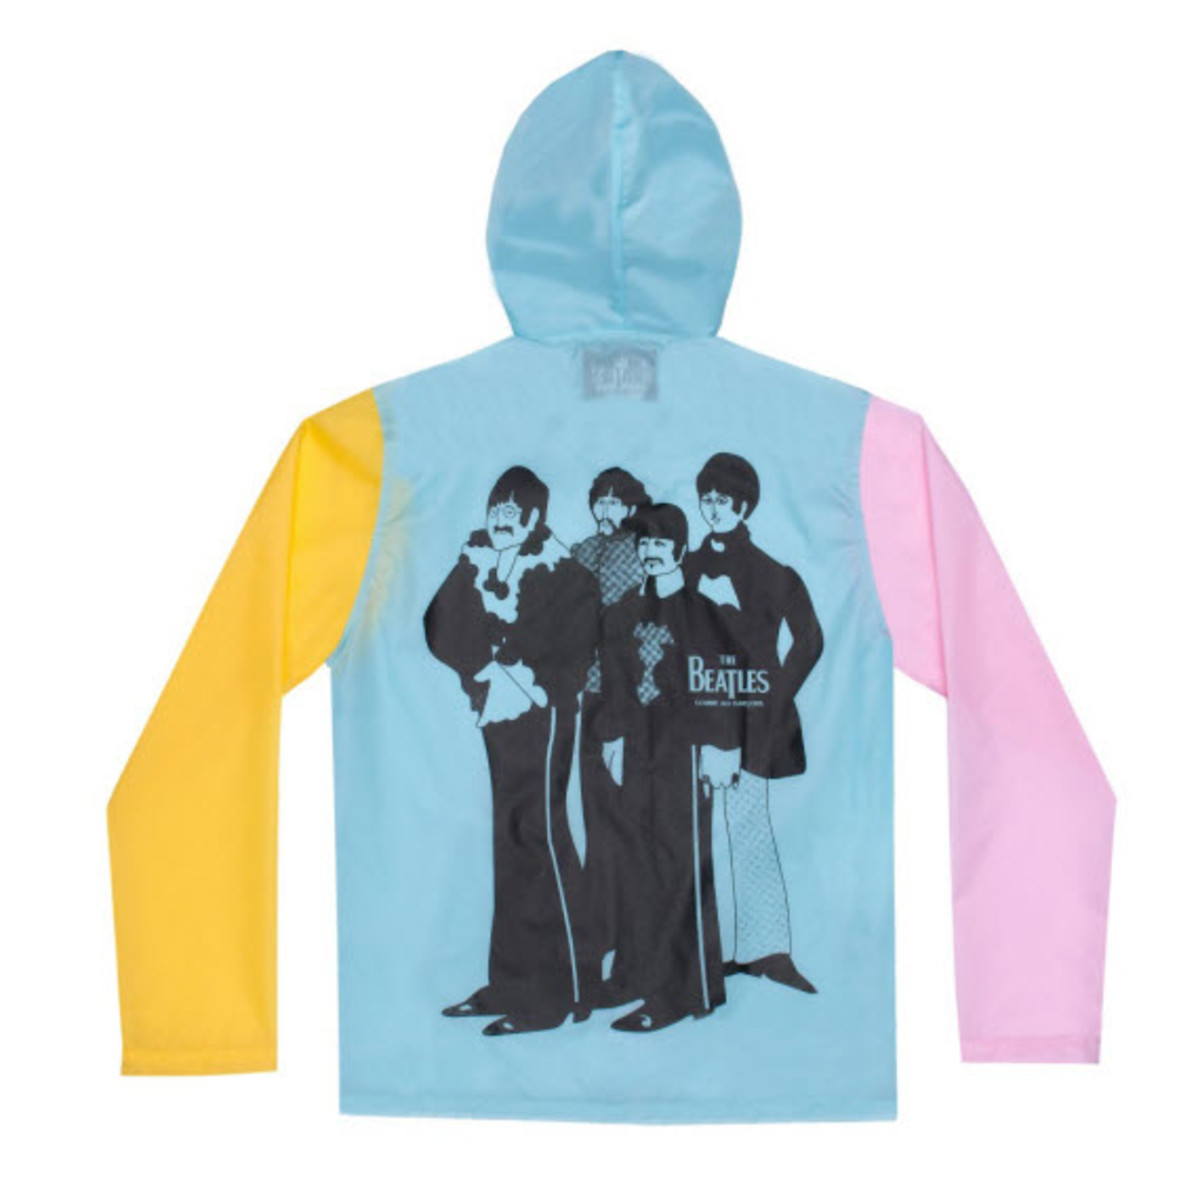 comme-des-garcons-x-the-beatles-the-beatles-springsummer-2013-capsule-collection-6